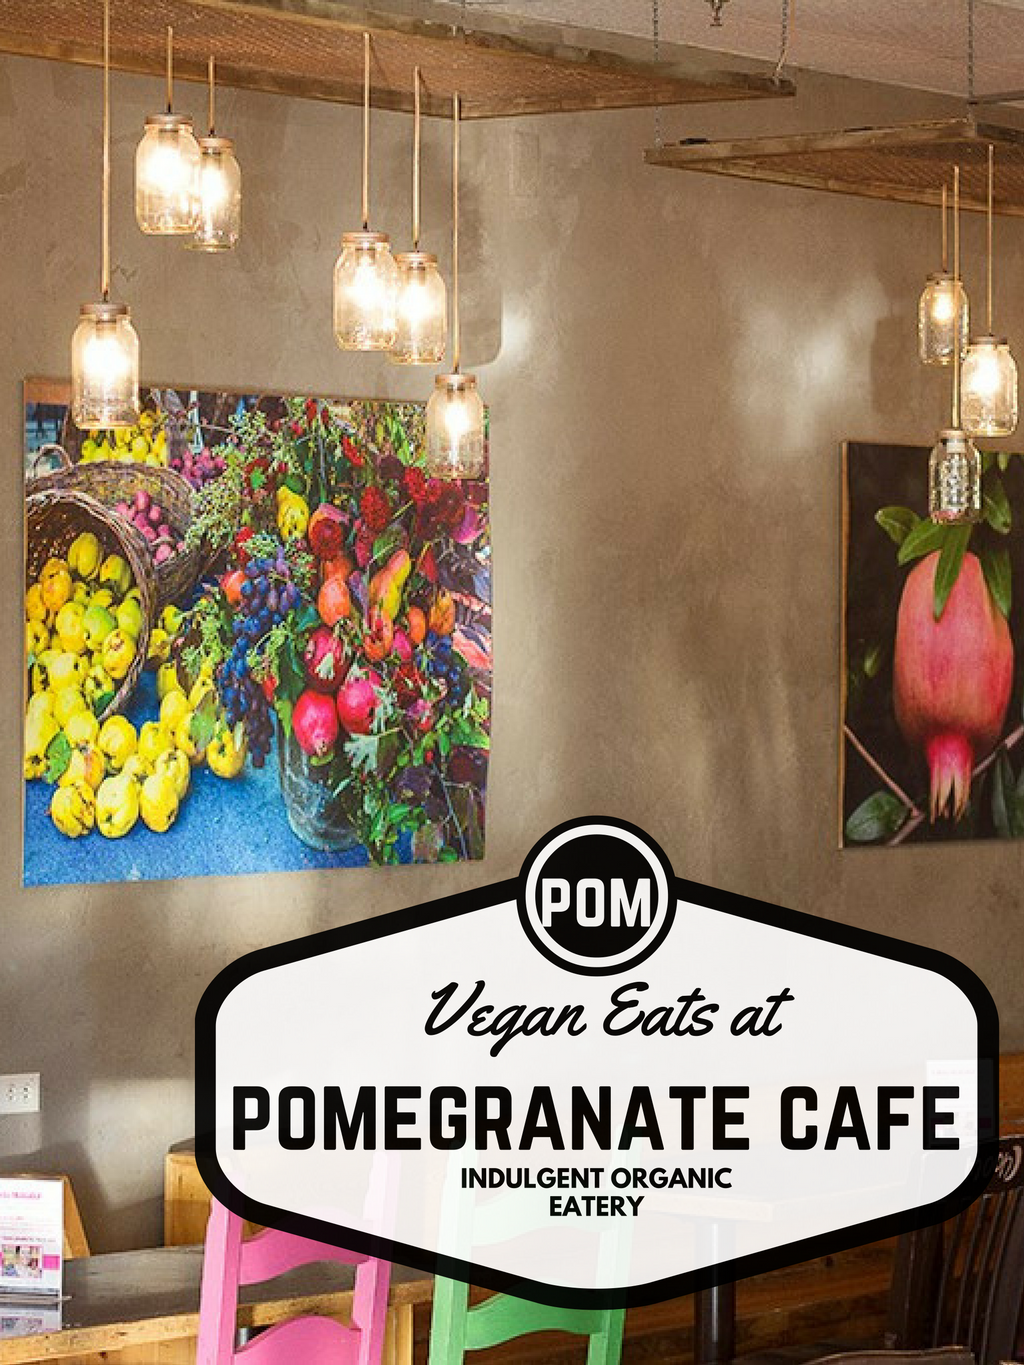 VEGAN eats at pomegranate cafe in phoenix arizona